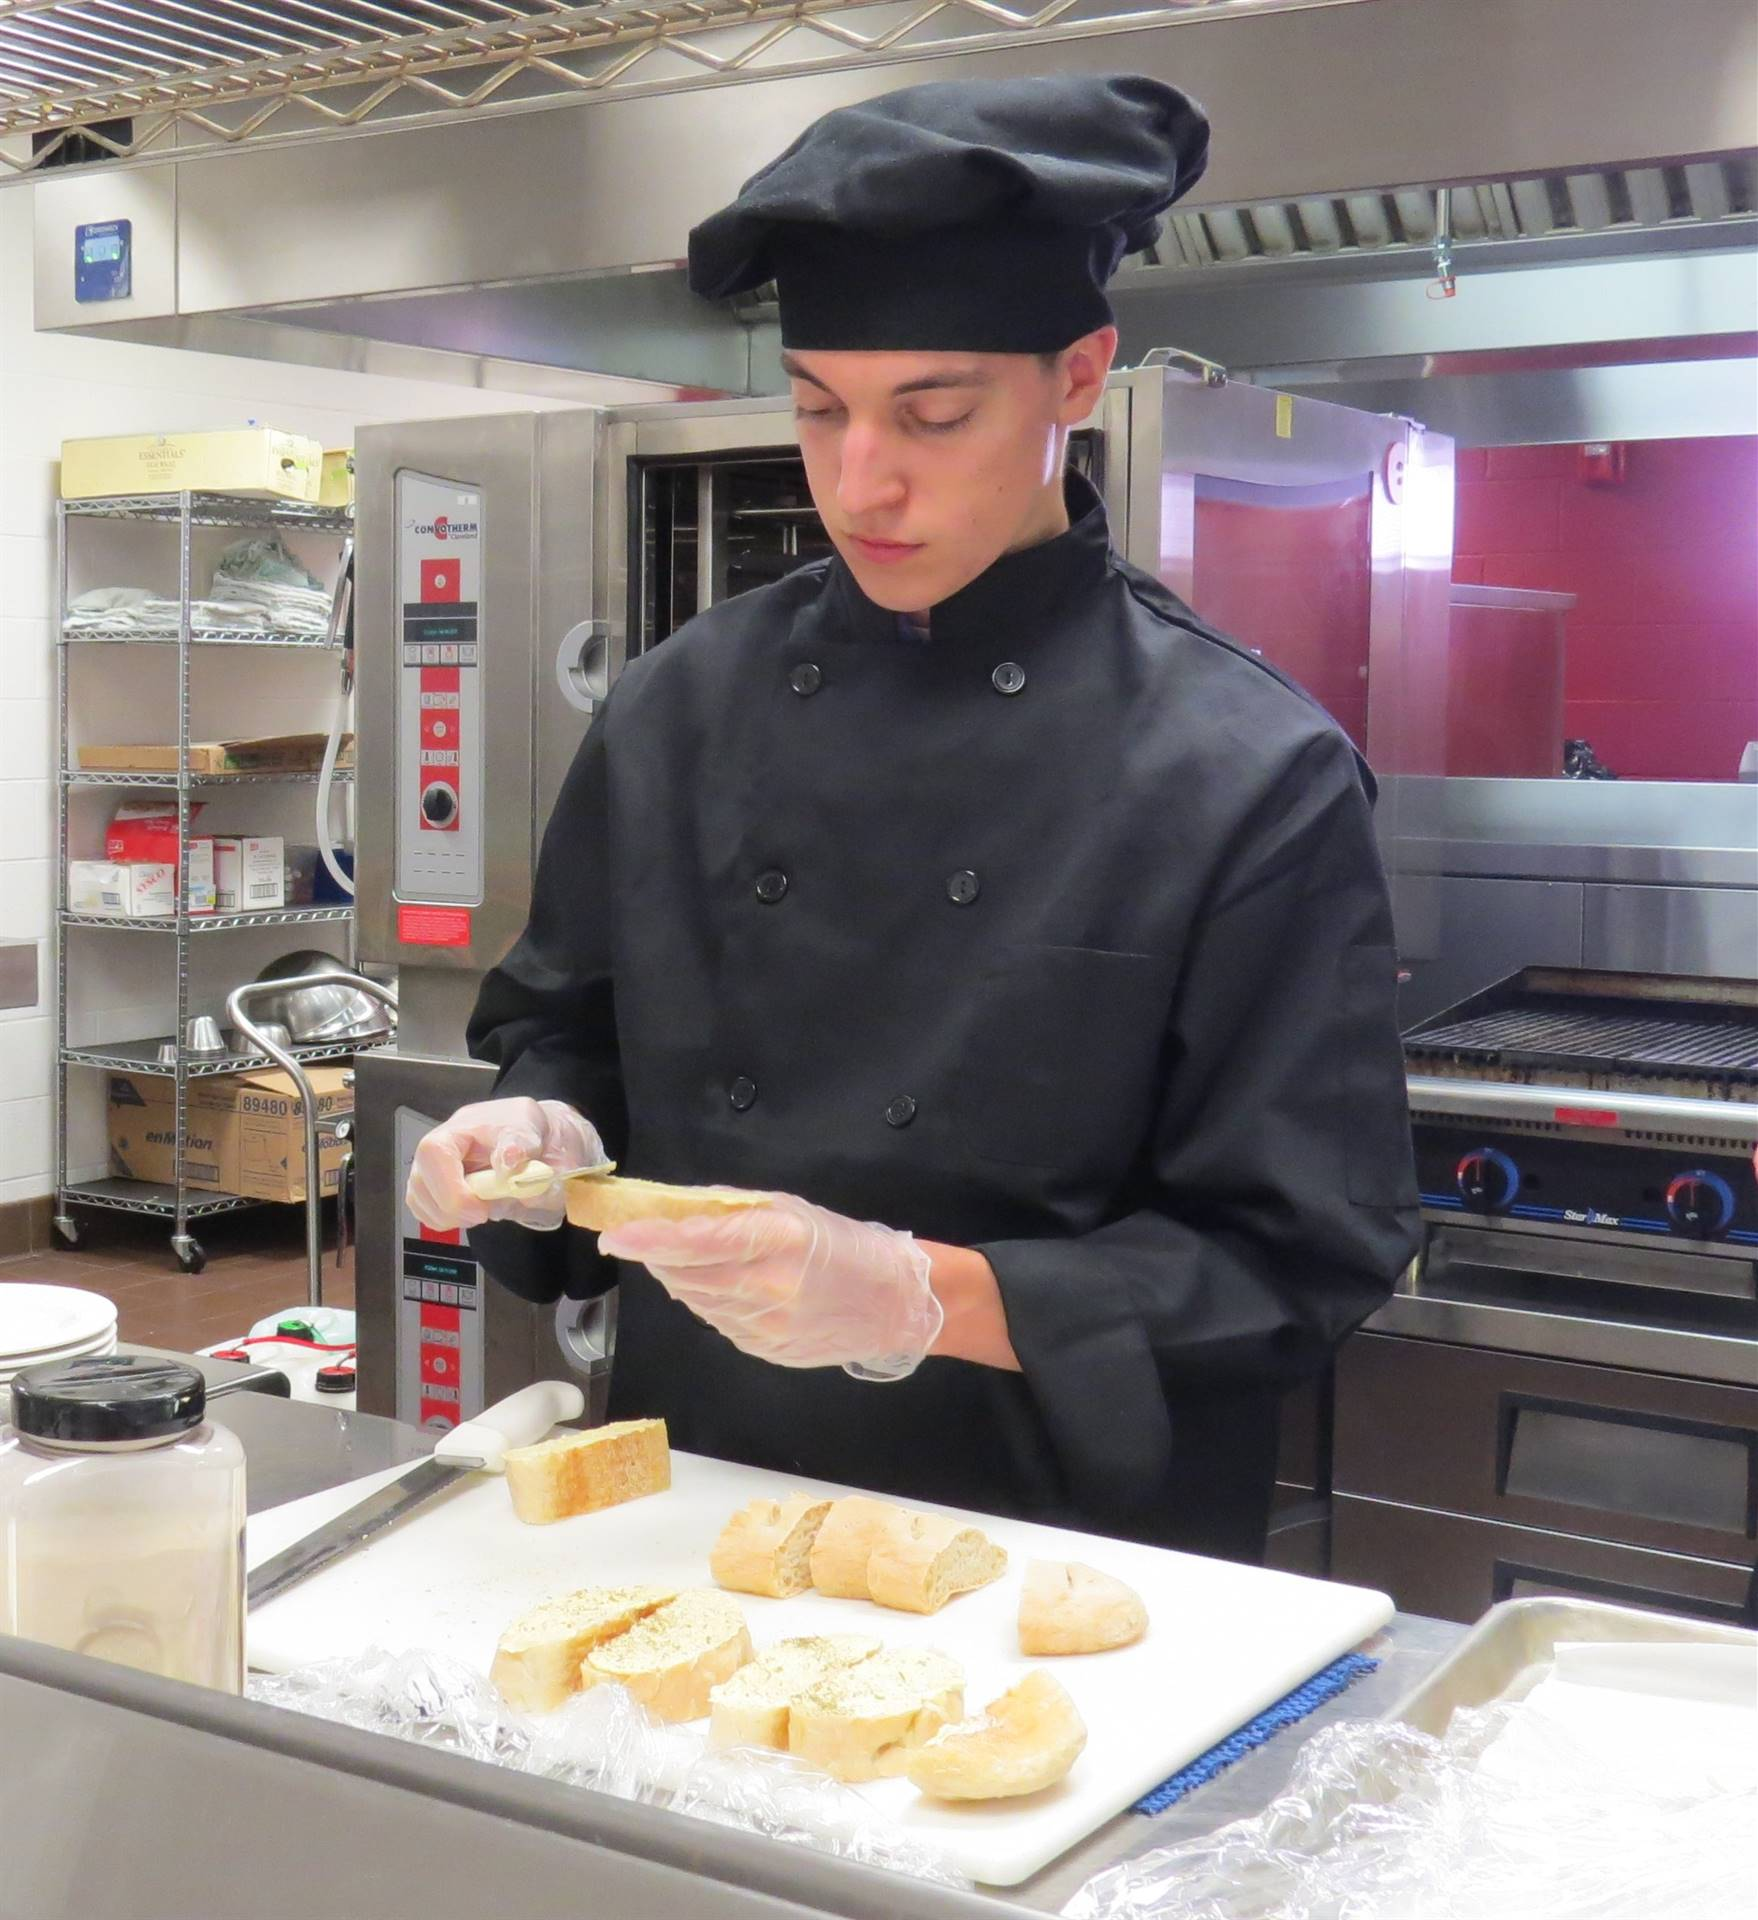 Male Culinary Arts student in black chef coat and hat buttering garlic bread